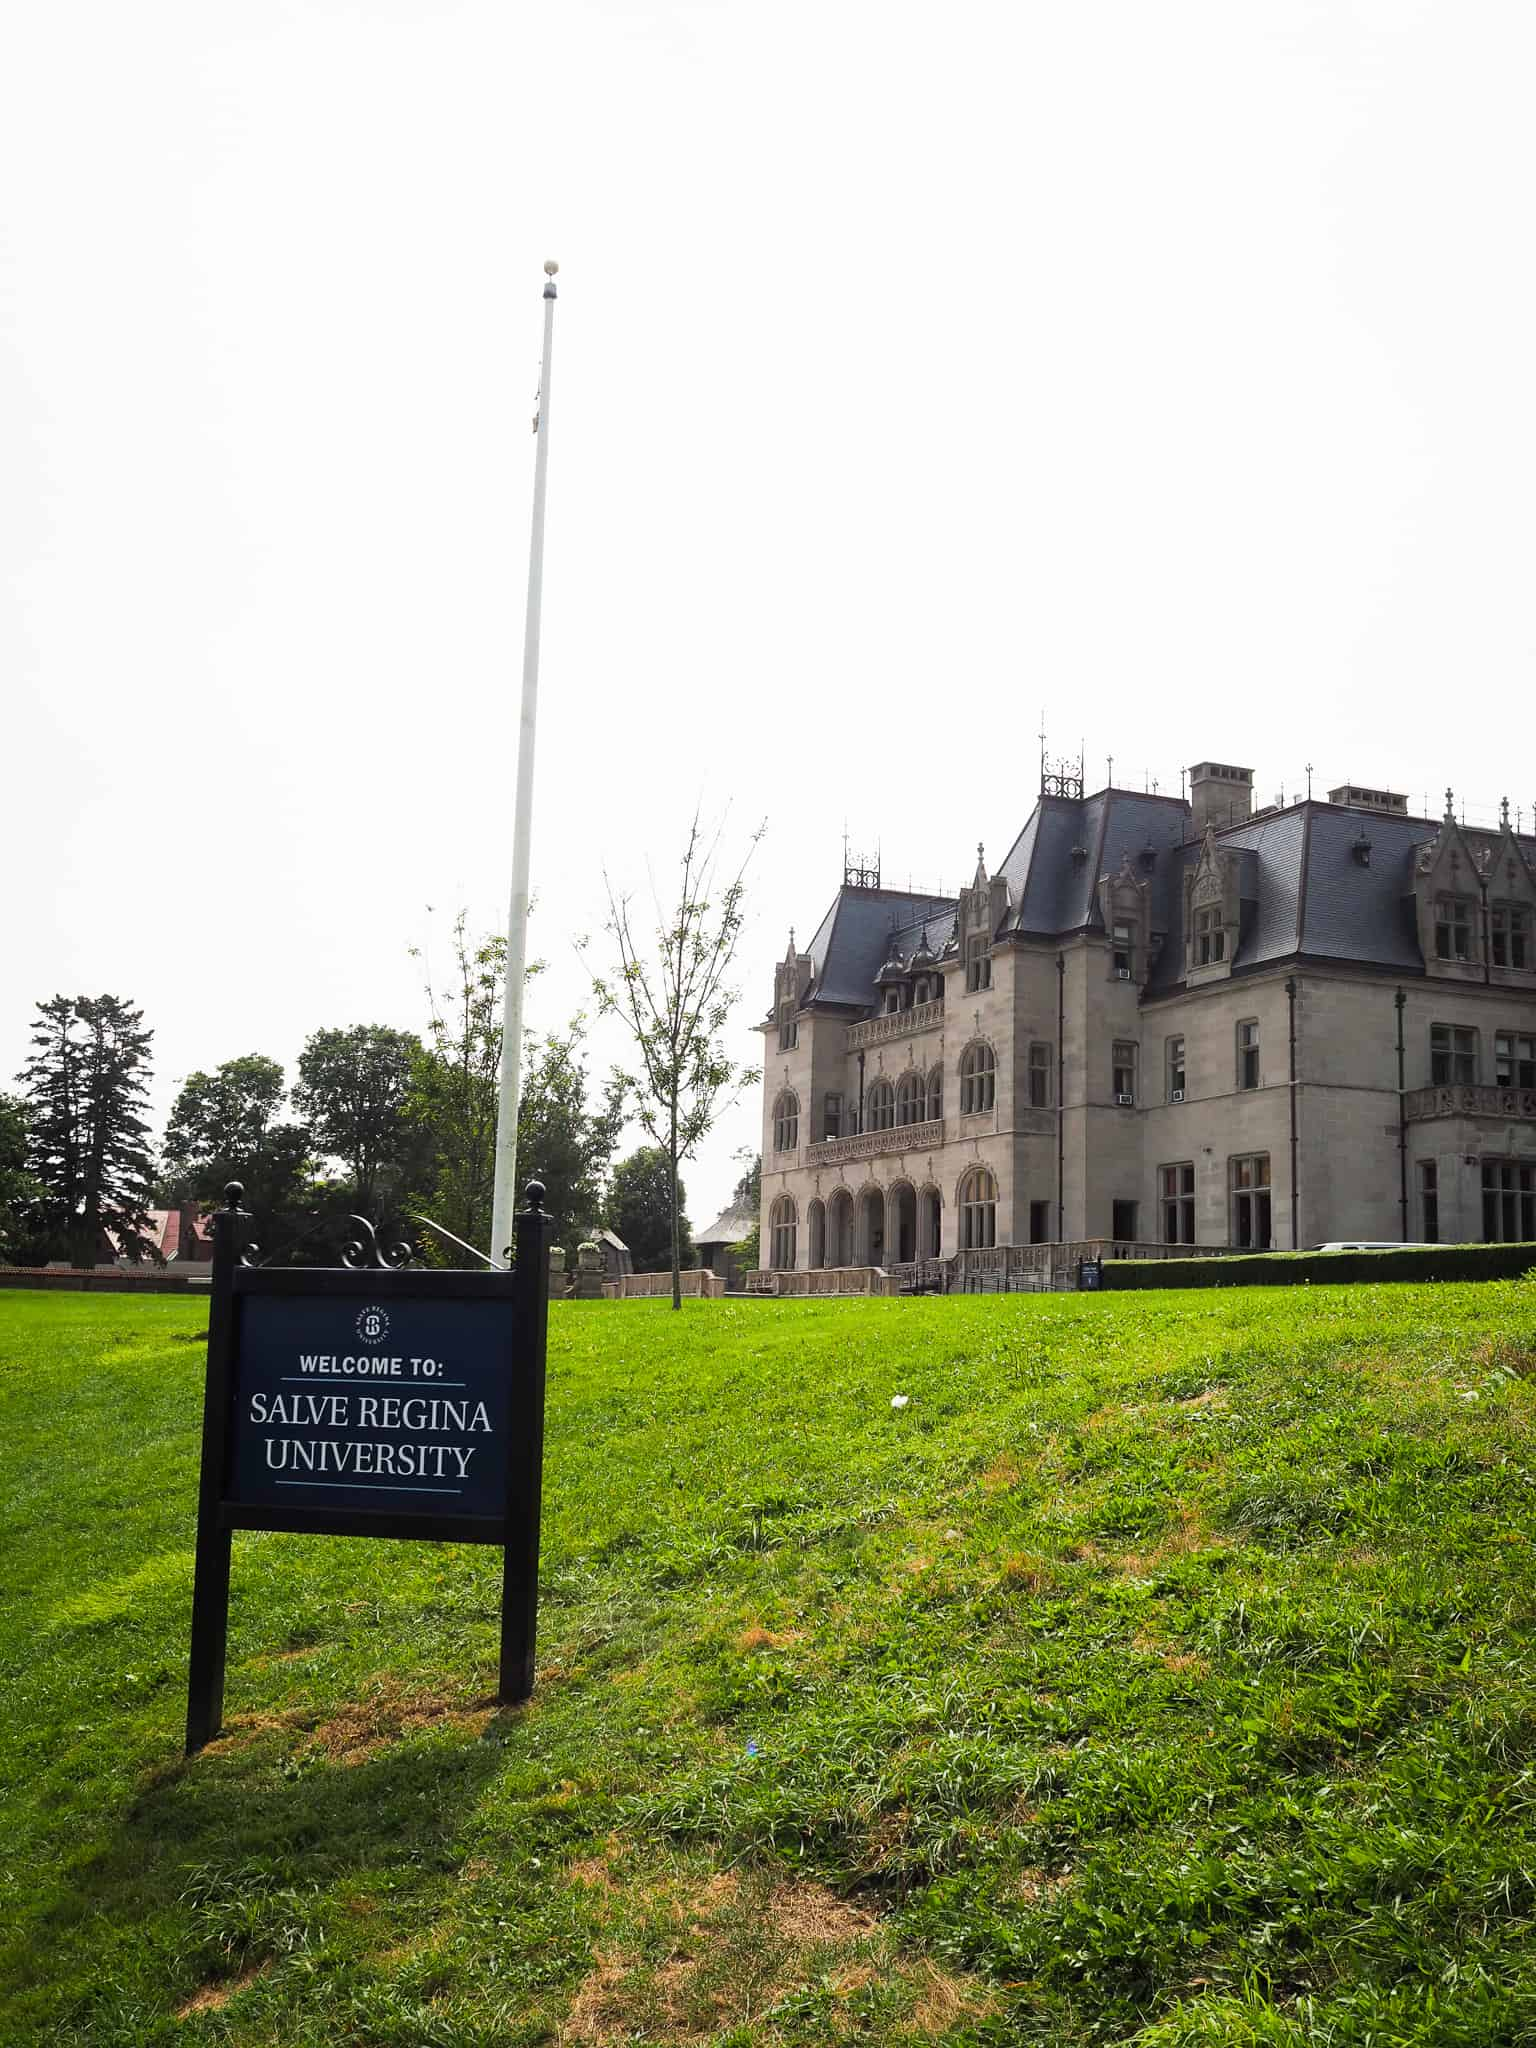 """Salve Regina University: Salve Regina University is a private university in Newport, Rhode Island founded in 1934 by the Sisters of Mercy. The university is accredited by the New England Commission of Higher Education. Movies that have also been filmed on this campus include """"True Lies"""" and """"Irriational Man""""."""